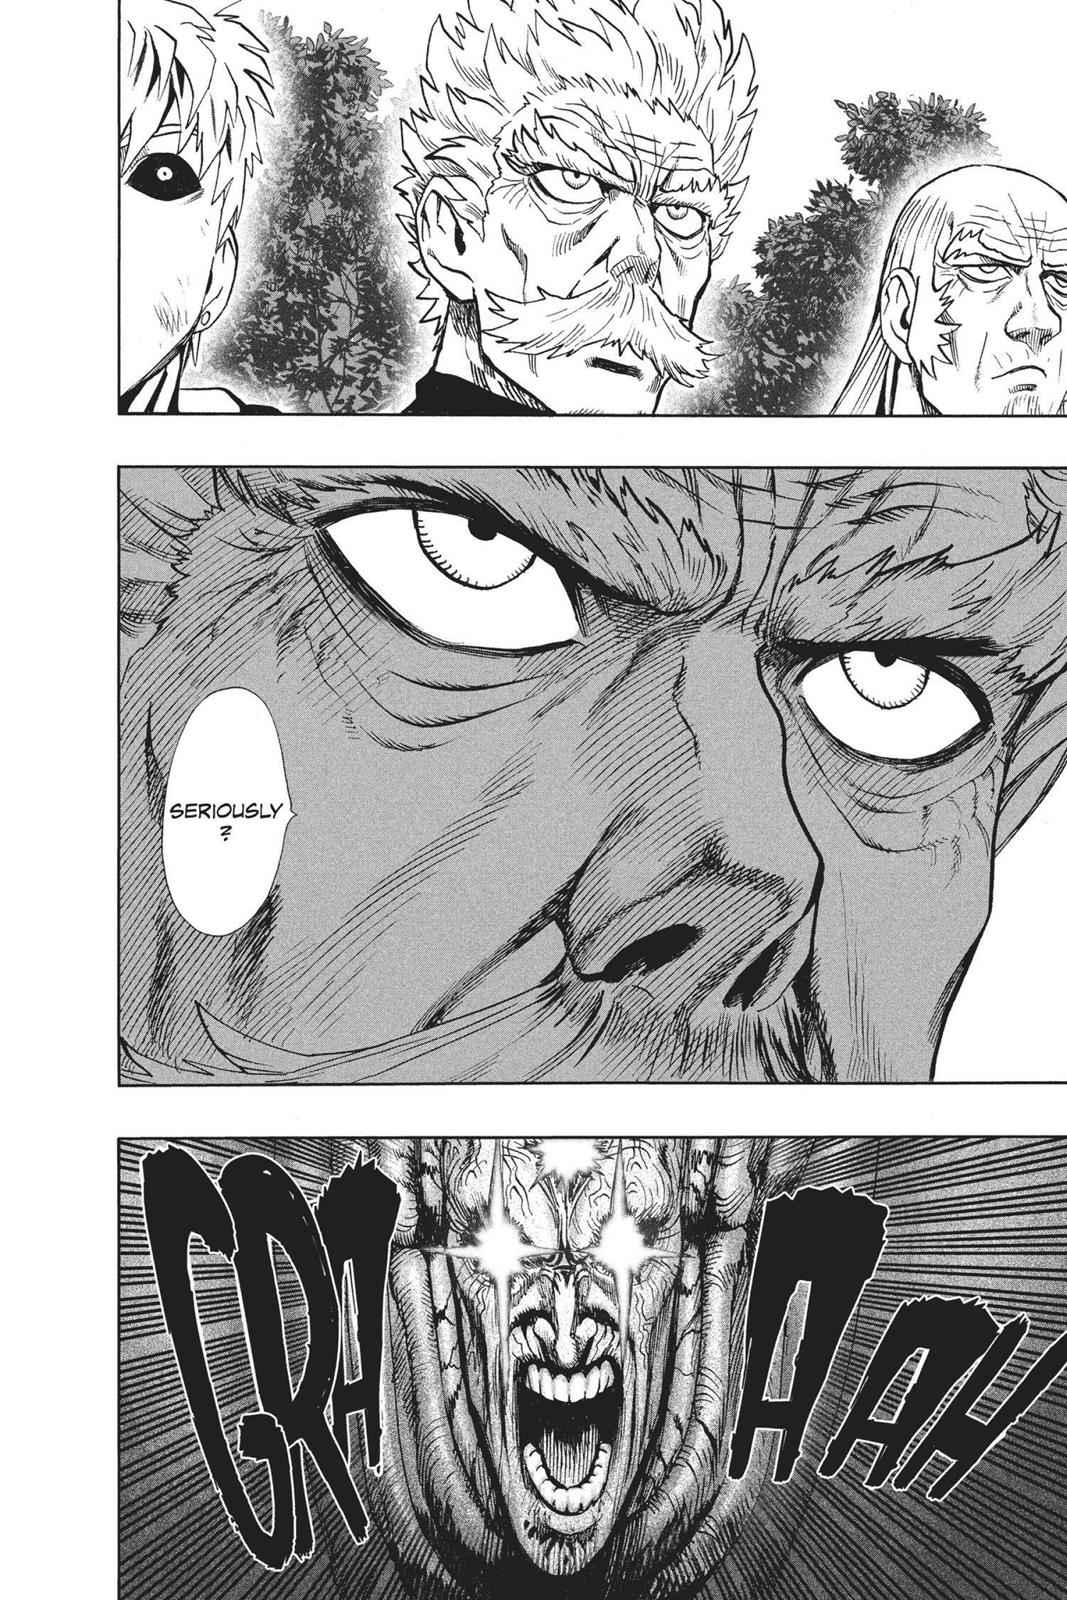 One-Punch Man Chapter 85 Page 61